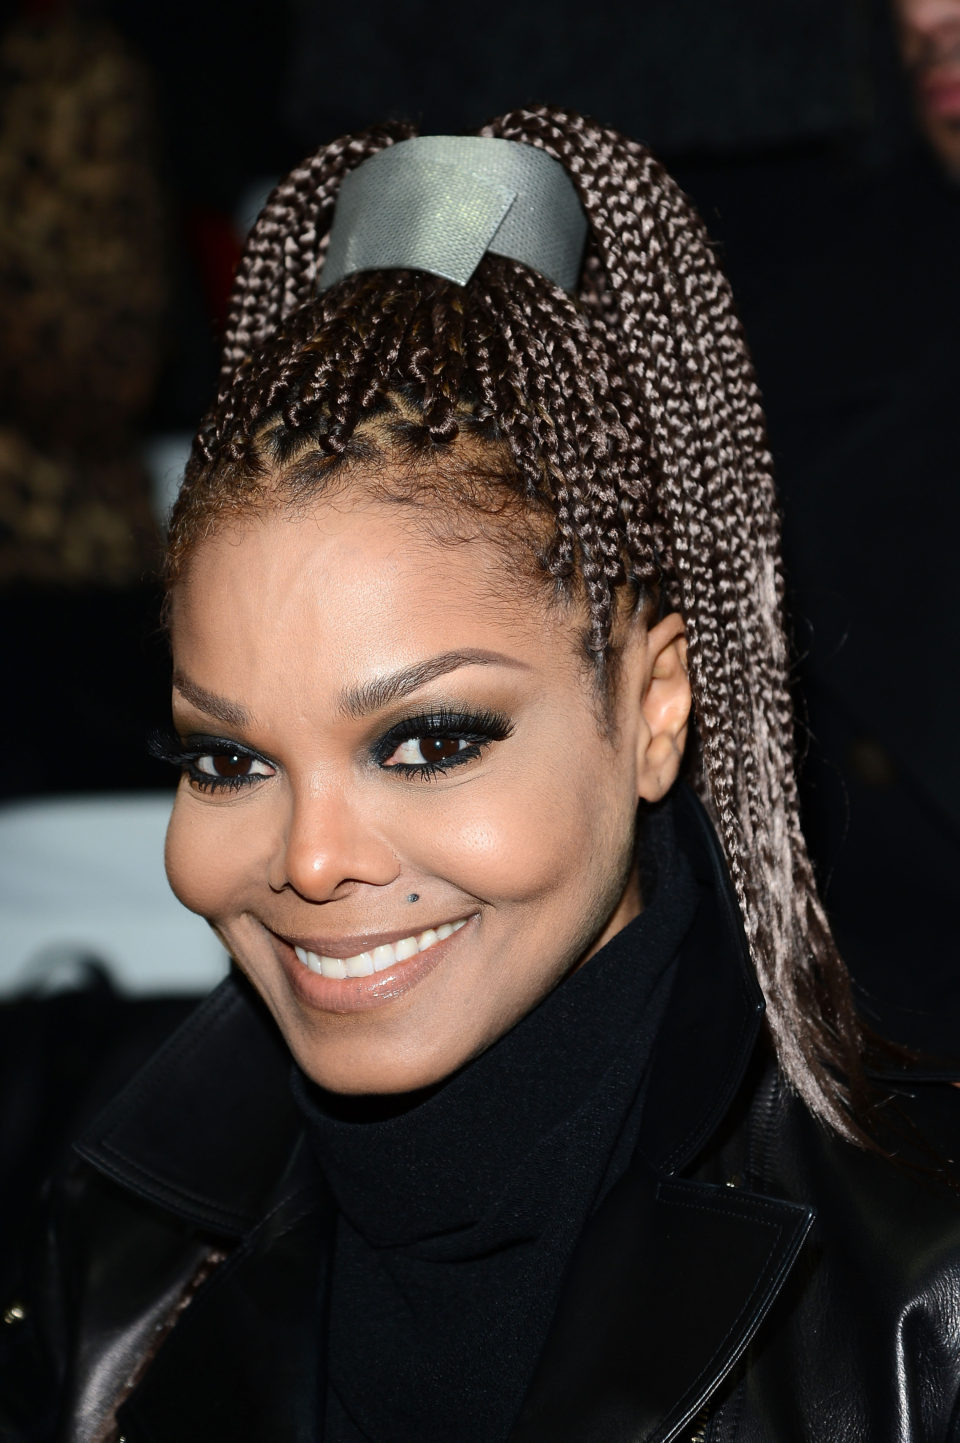 Braided-Pony-Hairstyle Poetic Justice Braids to Flaunt Your Fabulous Look